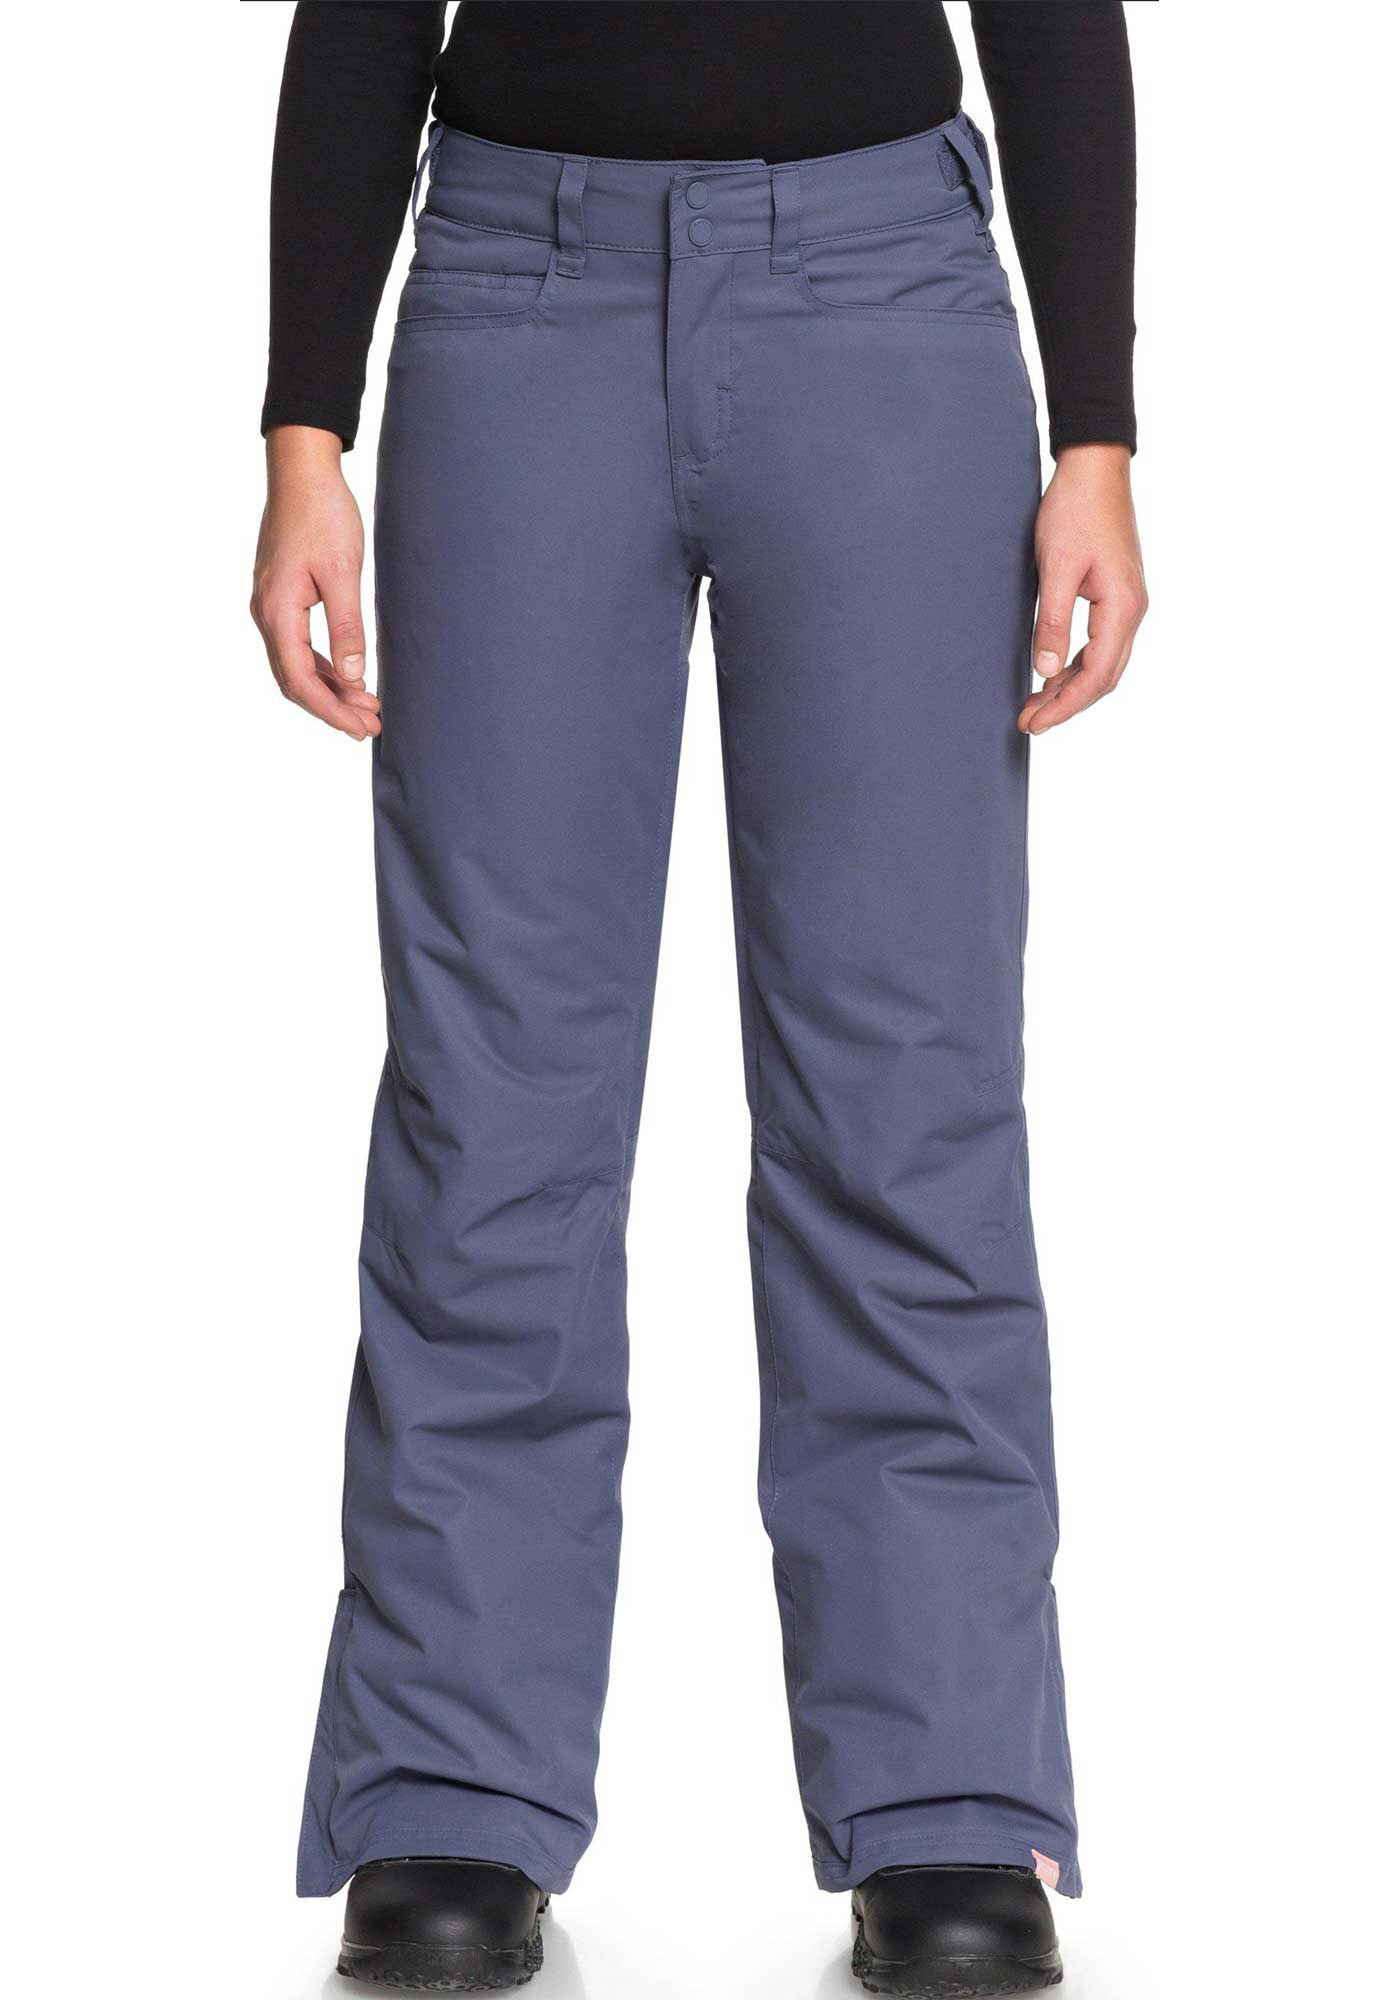 Roxy Women's Backyard Pants